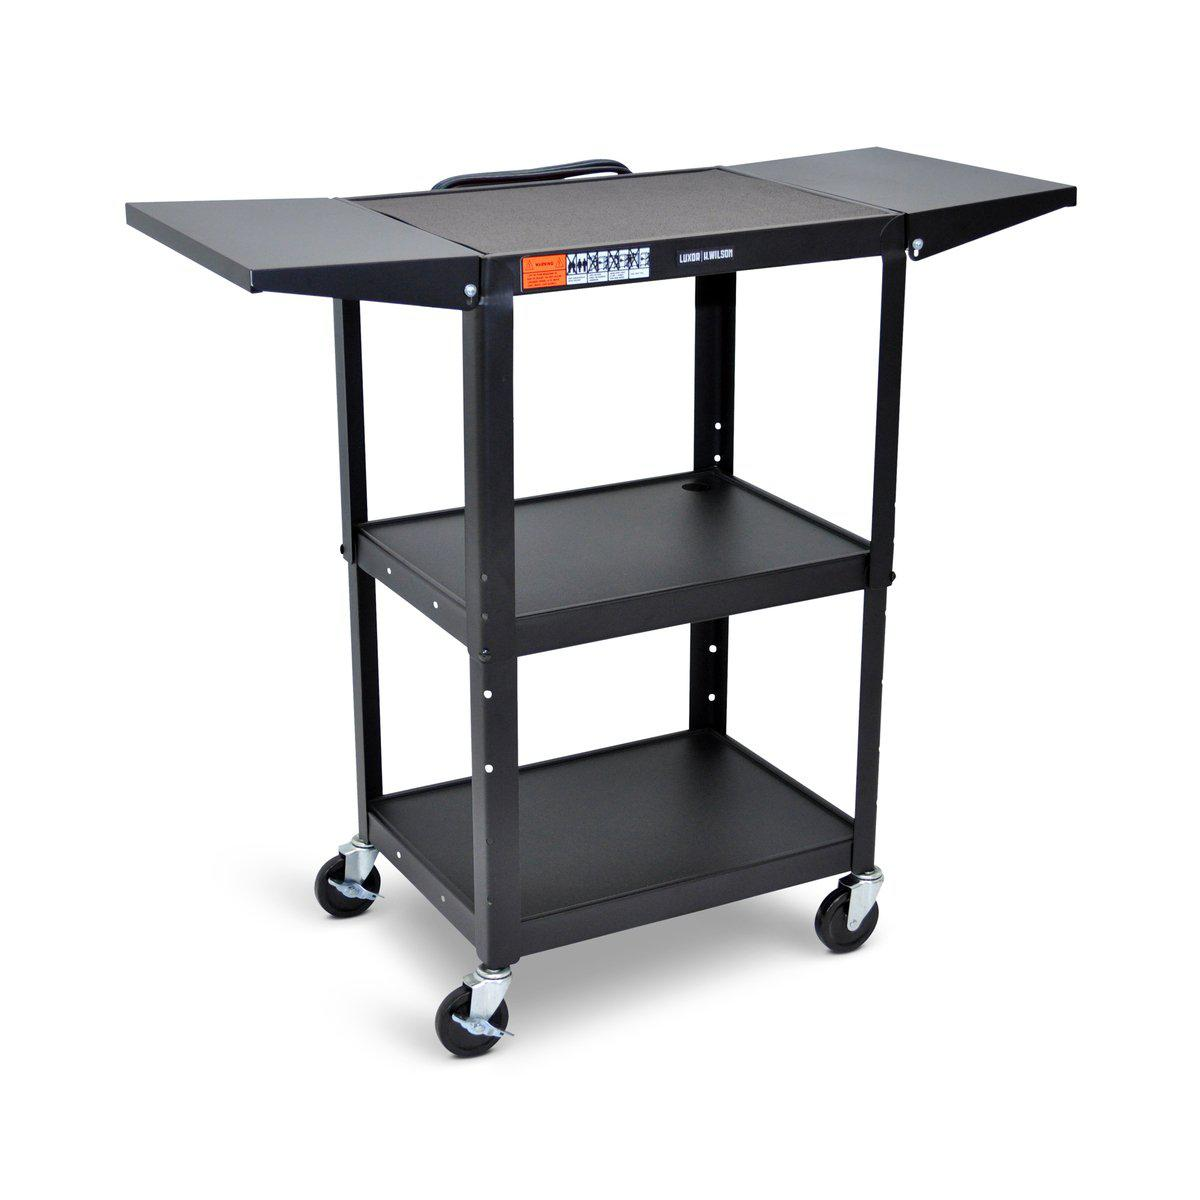 Adjustable-Height Steel AV Cart with Drop Leaf Shelves